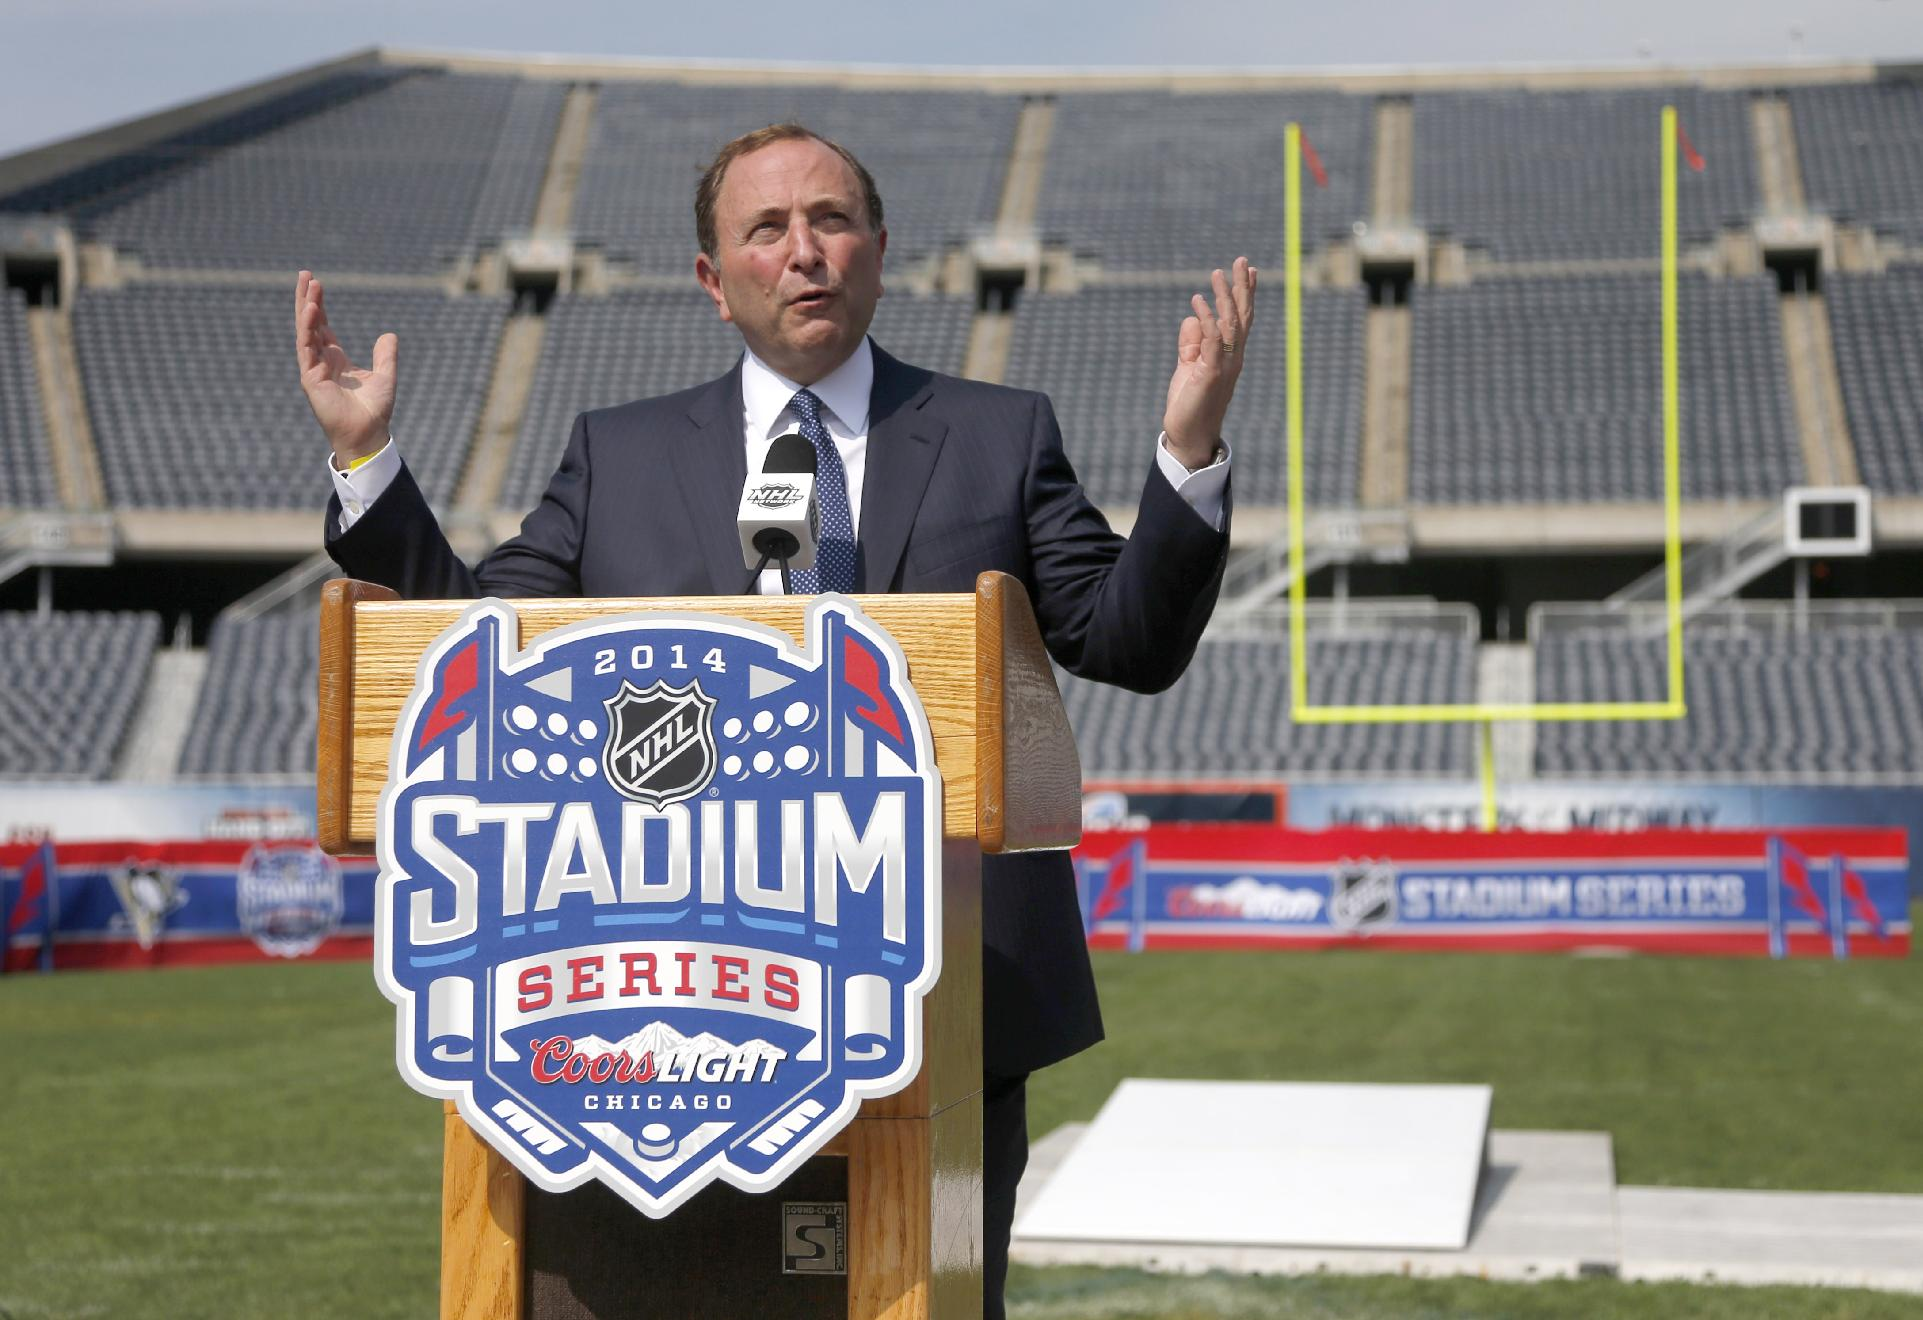 NHL Commissioner Gary Bettman talks about the Stadium Series hockey game between the Chicago Blackhawks and Pittsburgh Penguins to be held in March, during a news conference Thursday, Sept. 19, 2013, at Soldier Field in Chicago